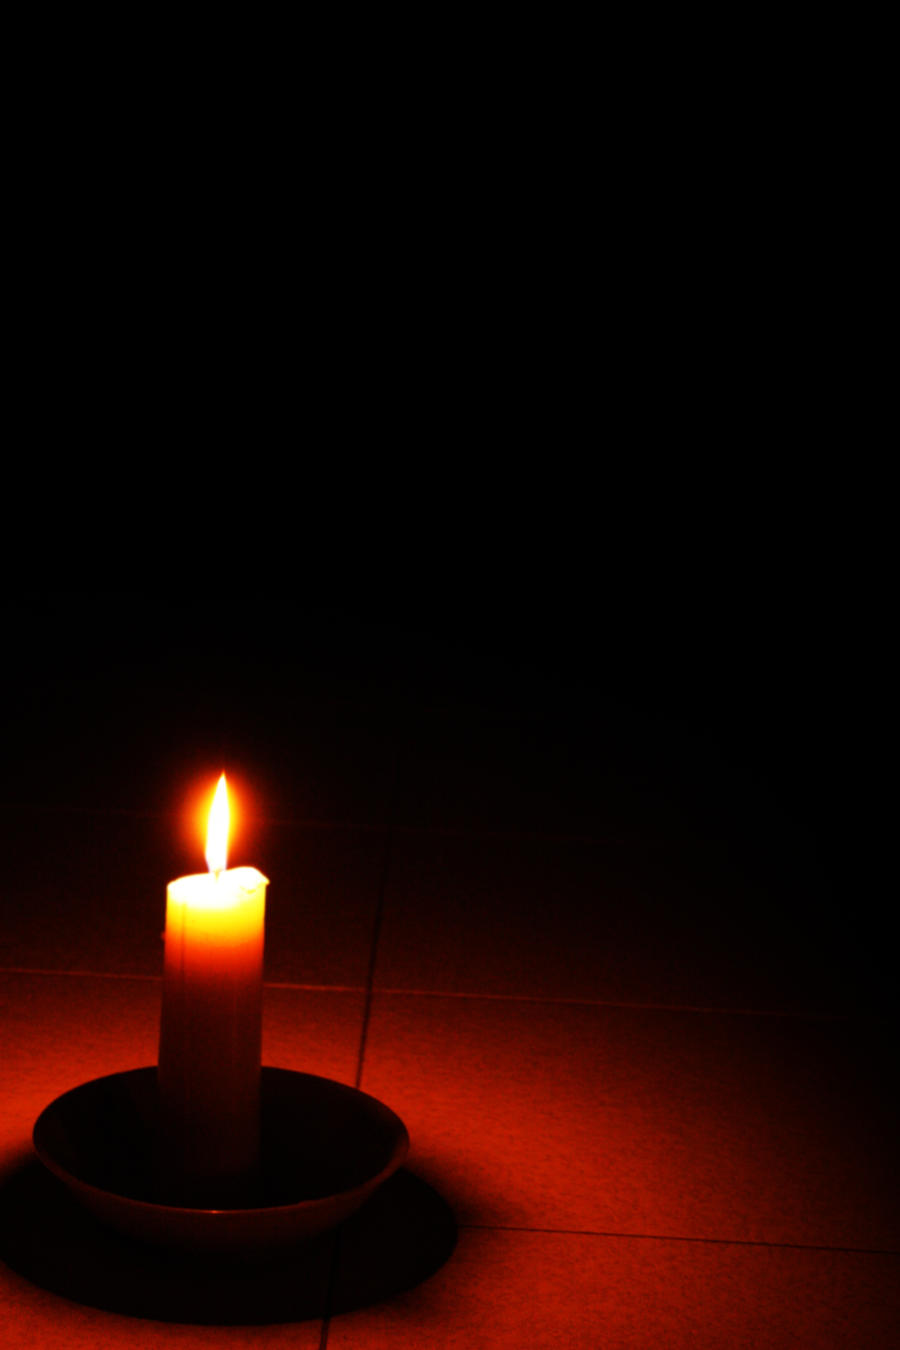 candle in the dark - photo #8